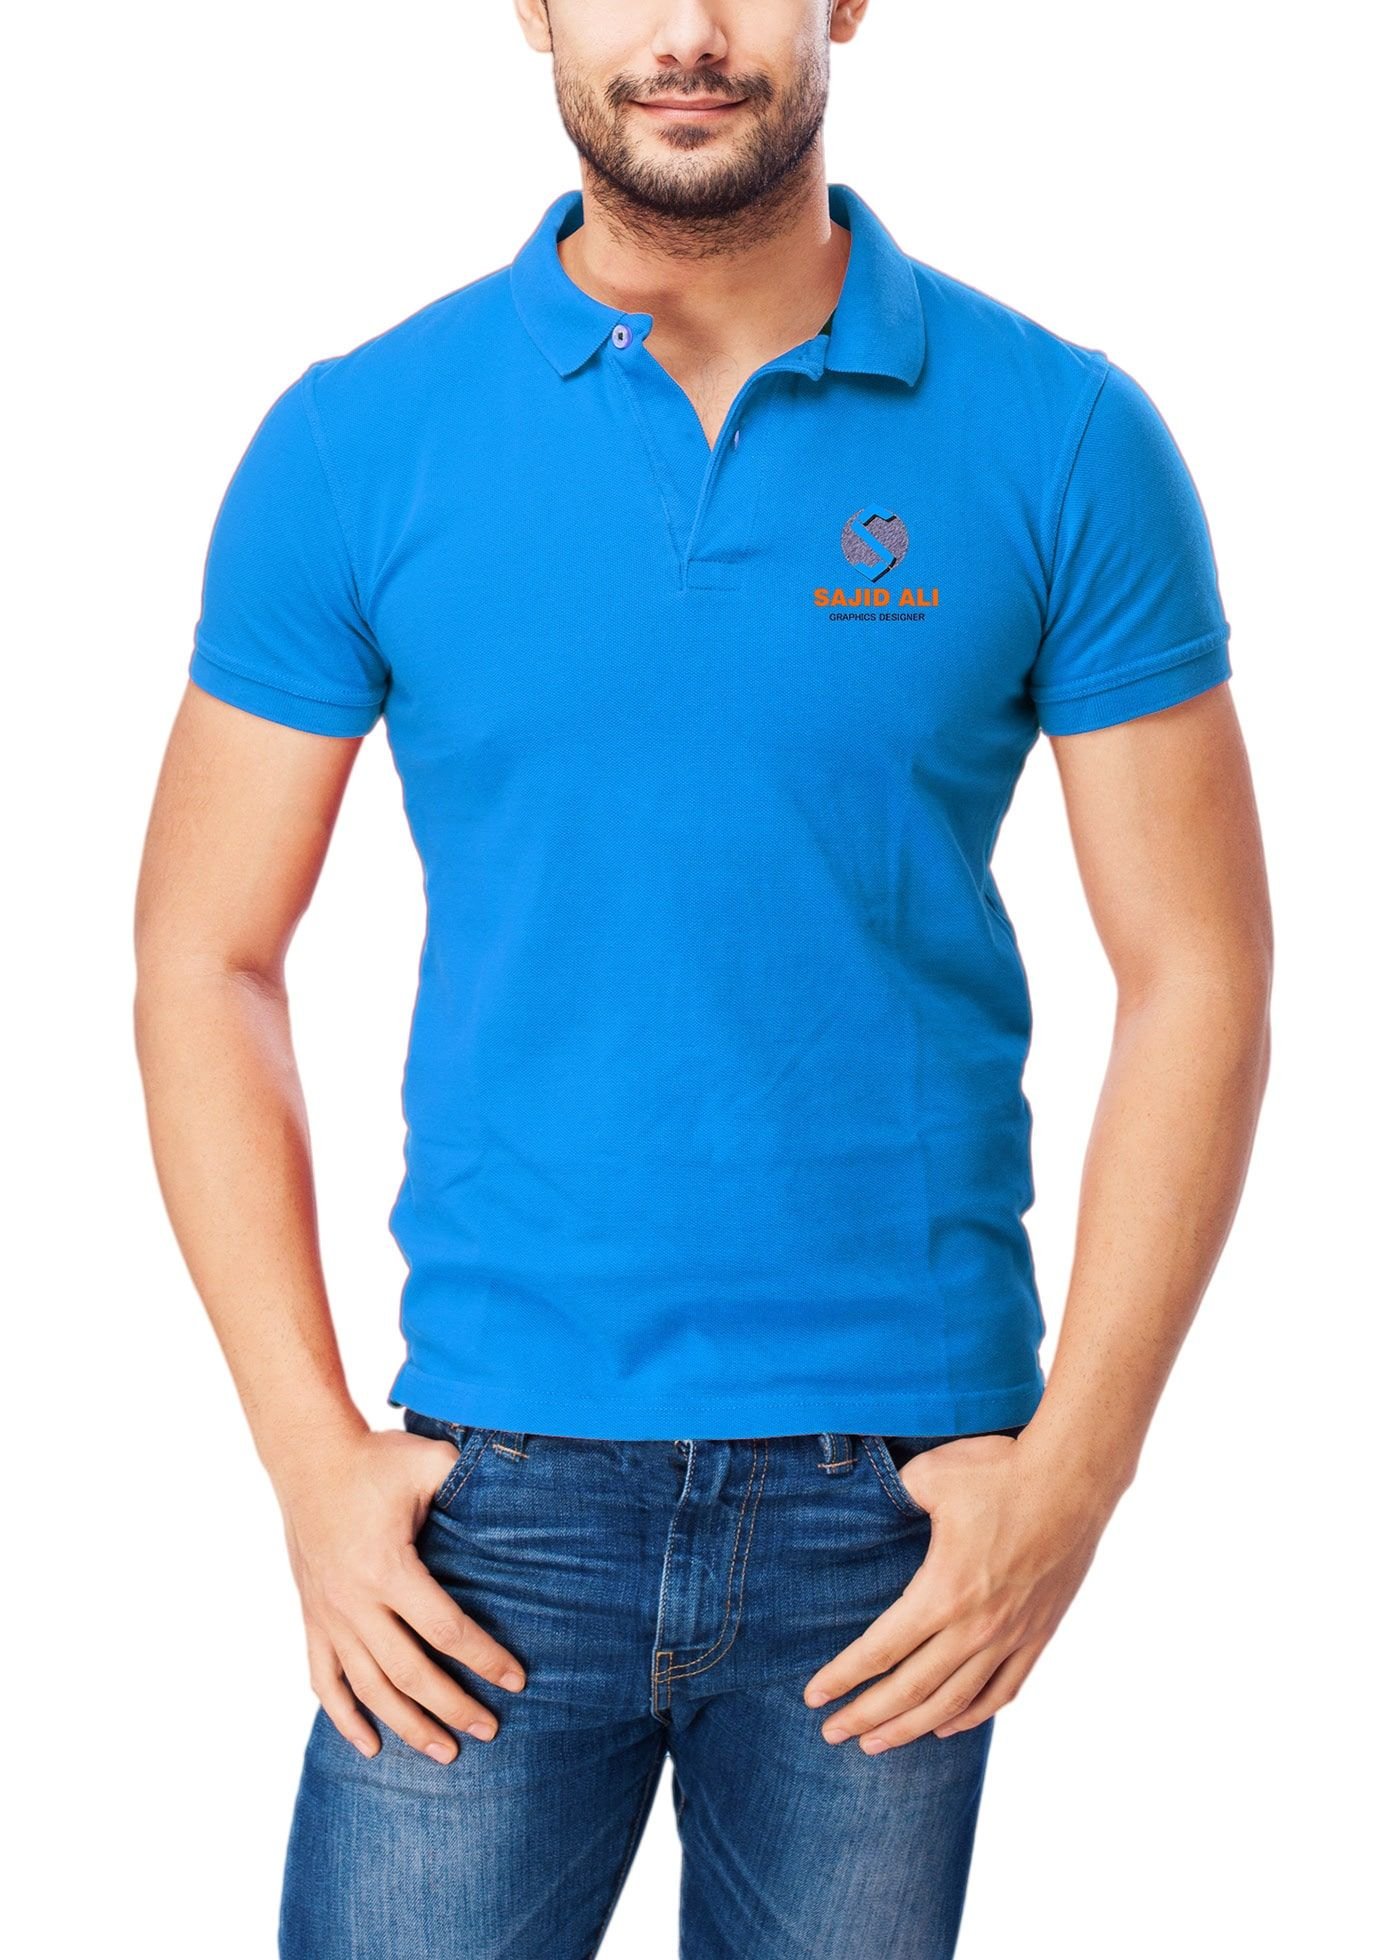 Download Polo T Shirts Mock Up Free Download Tshirt Mockup Polo T Shirts Shirt Mockup